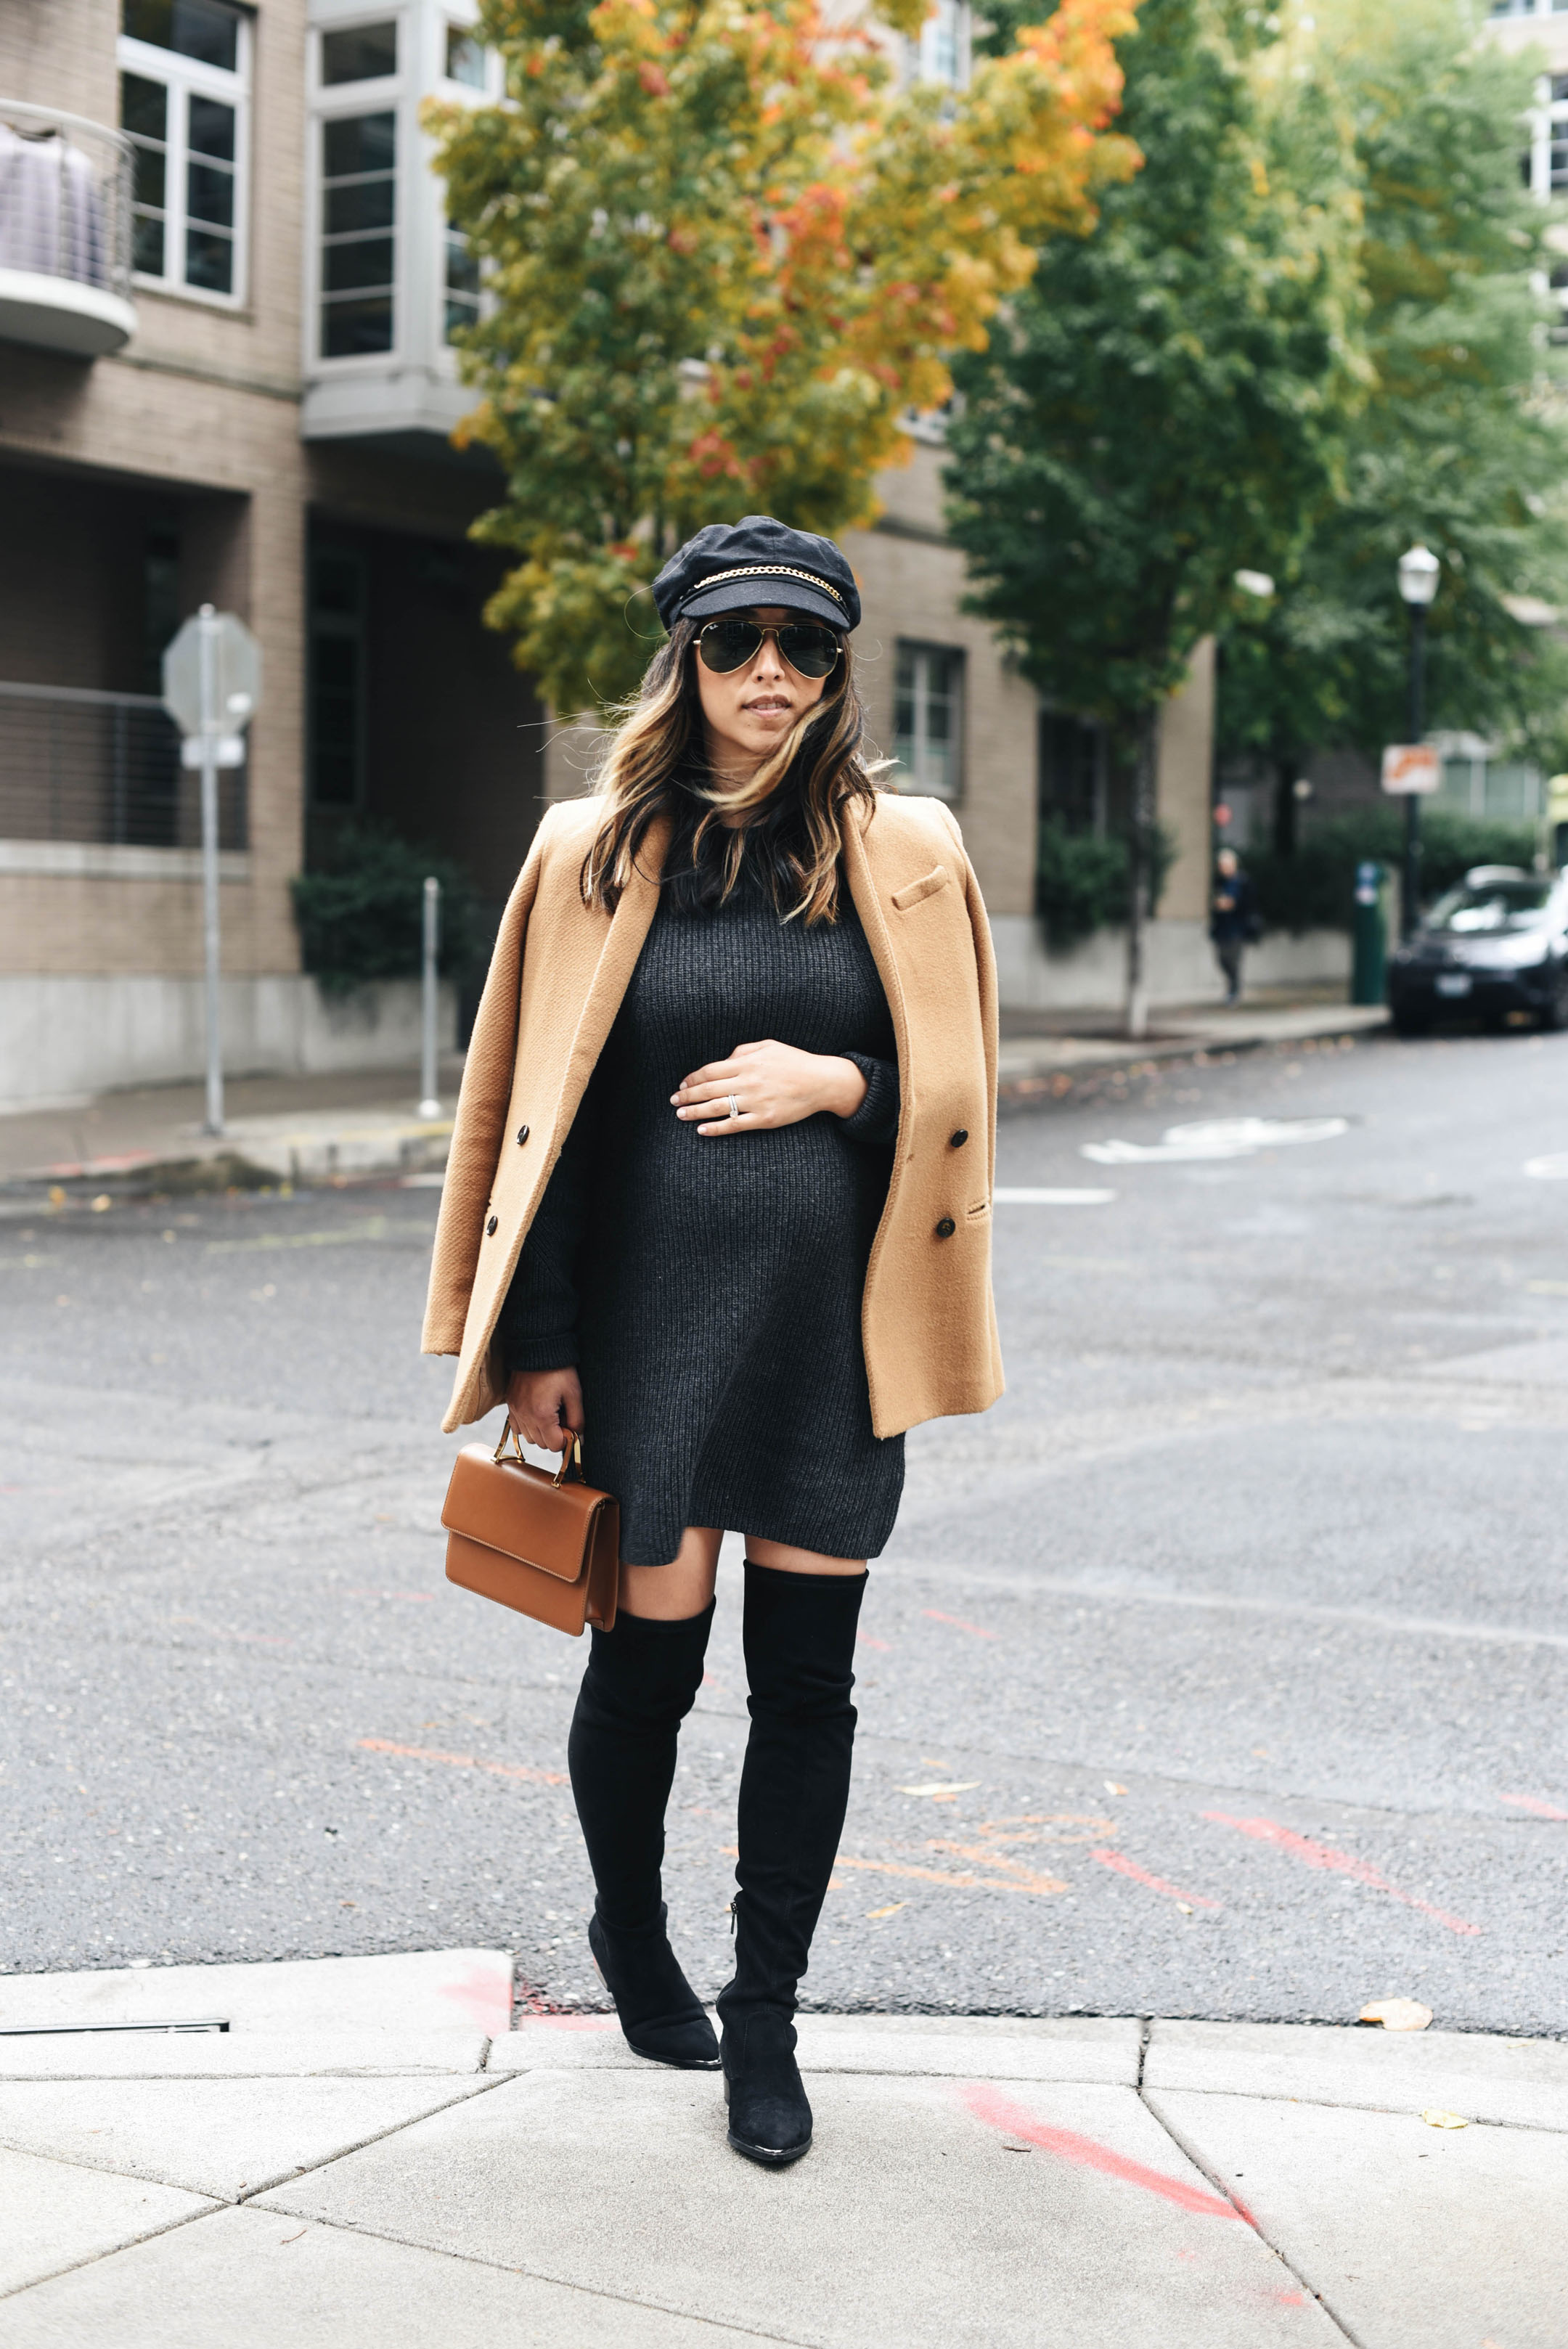 ee565eea4b2e Your Guide to Buying and Styling Over The Knee Boots - Crystalin Marie